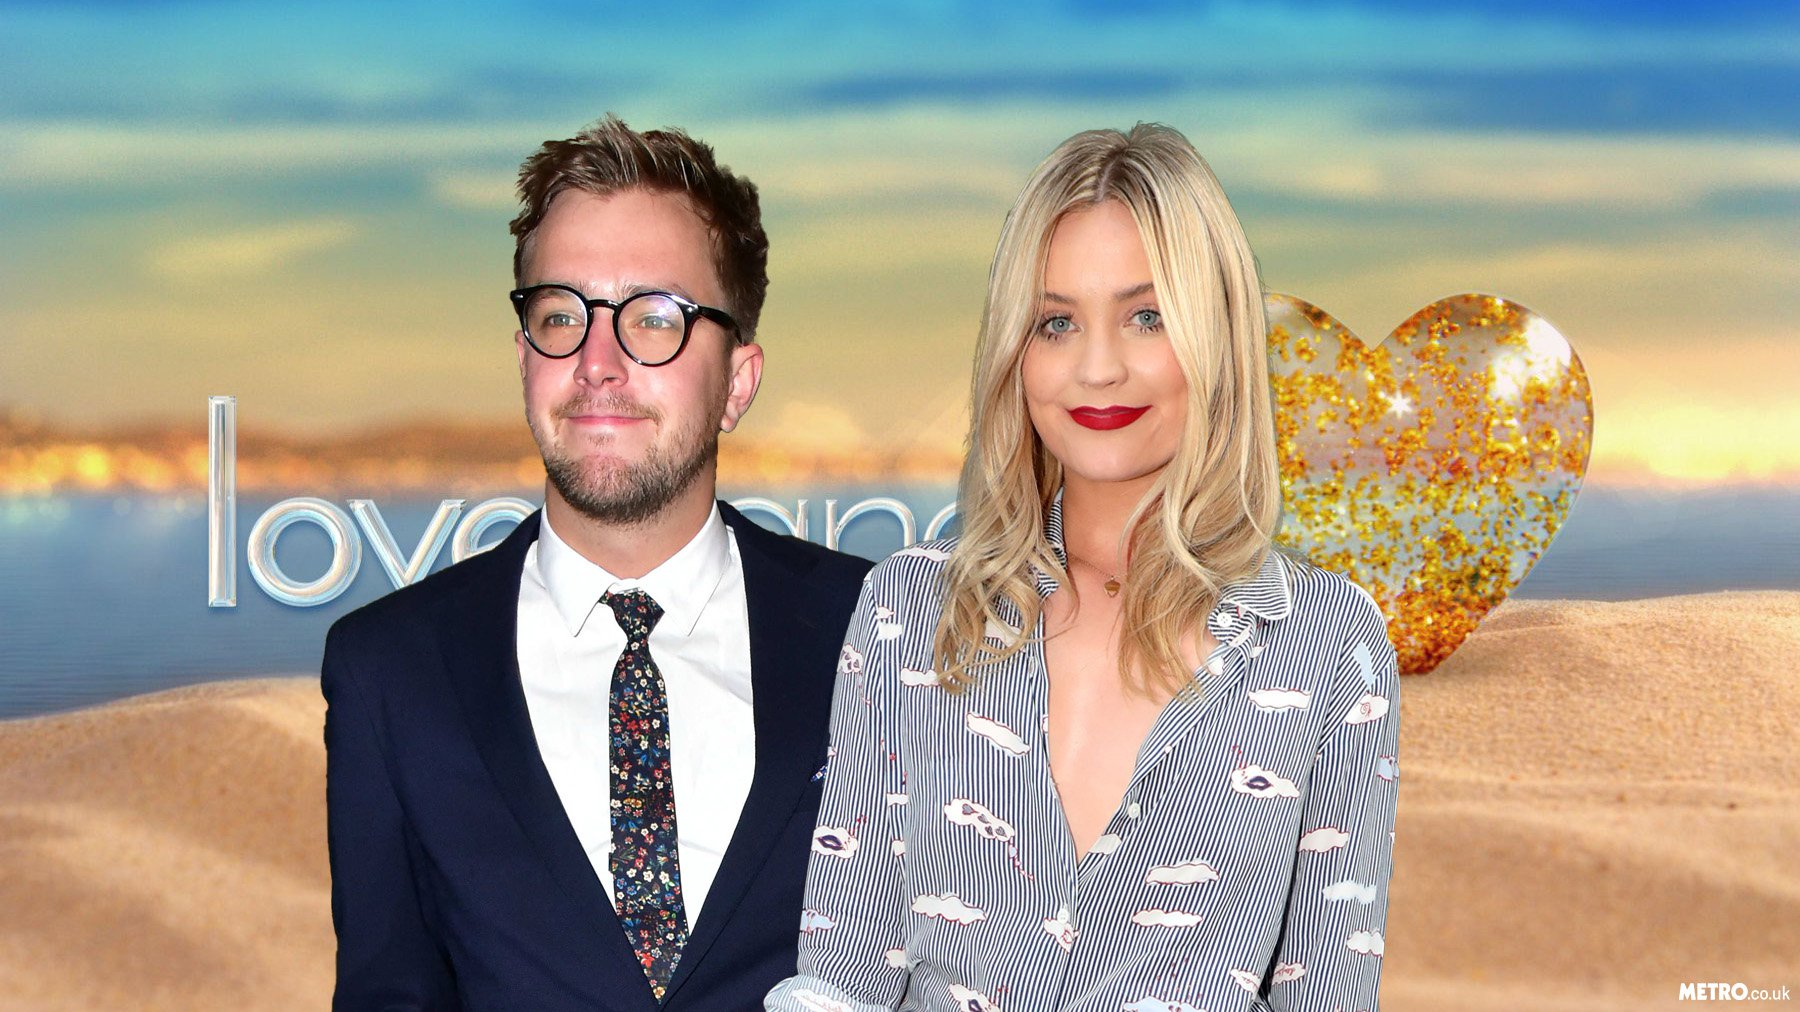 Laura Whitmore and Love Island's narrator Iain Stirling are officially an item